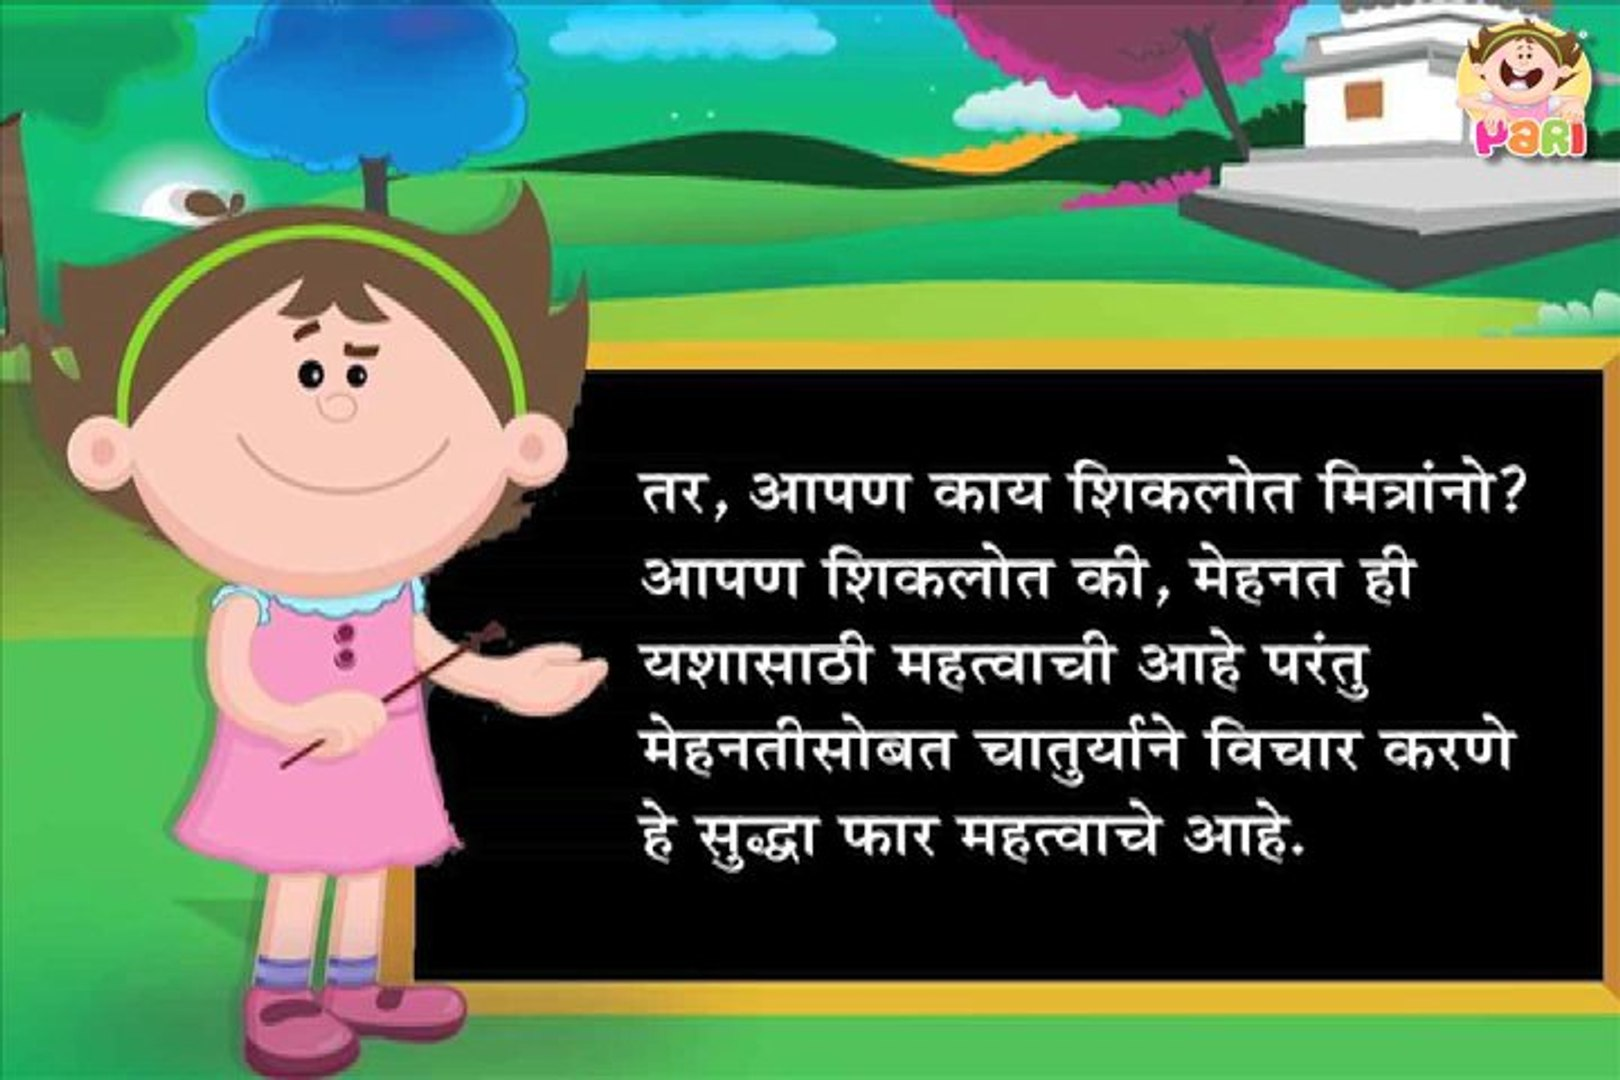 panchatantra stories in marathi pdf free download